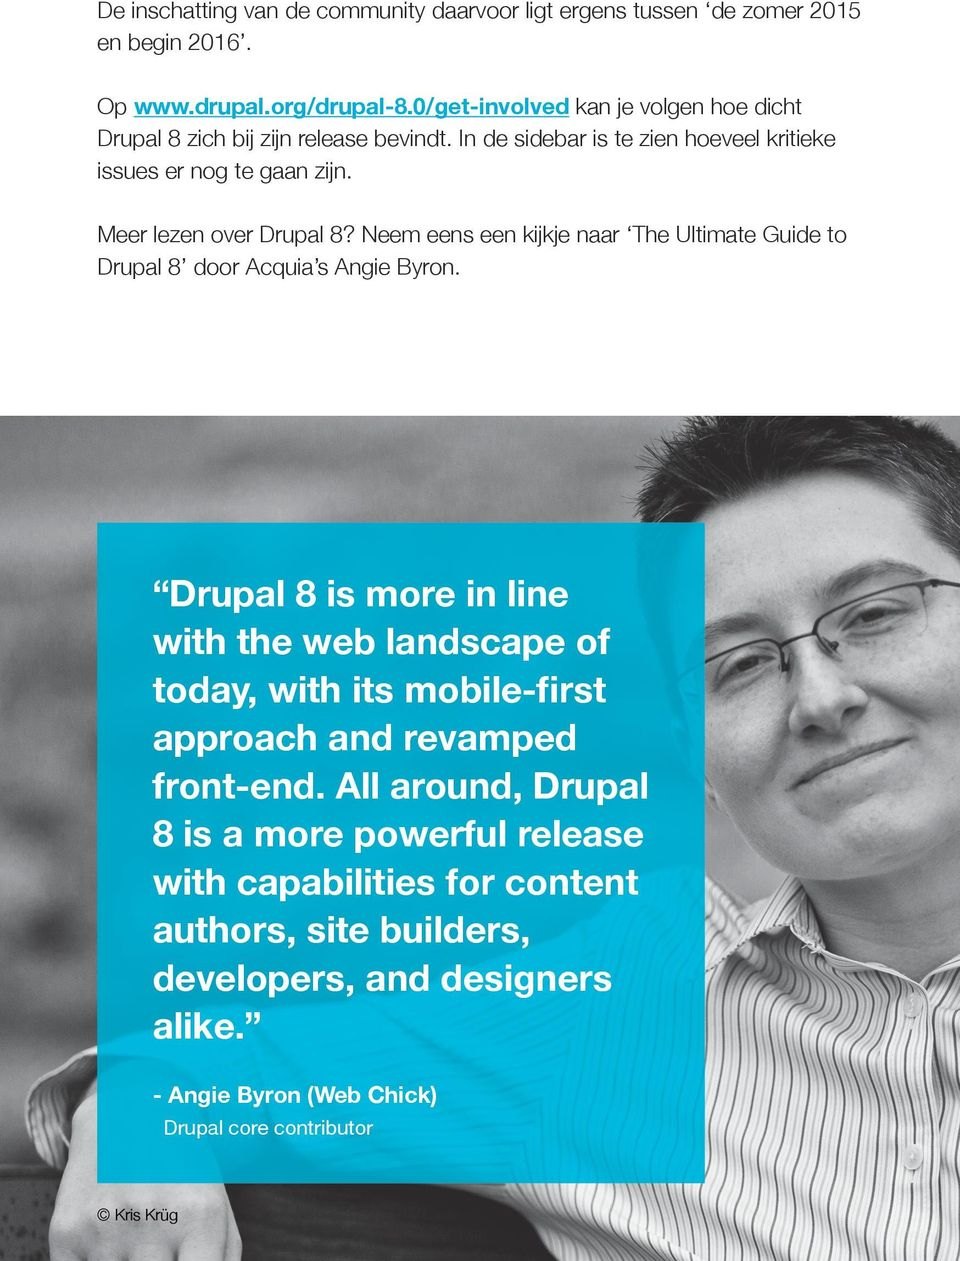 Drupal 8 is more in line with the web landscape of today, with its mobile-first approach Drupal and revamped 8 will be more front-end.